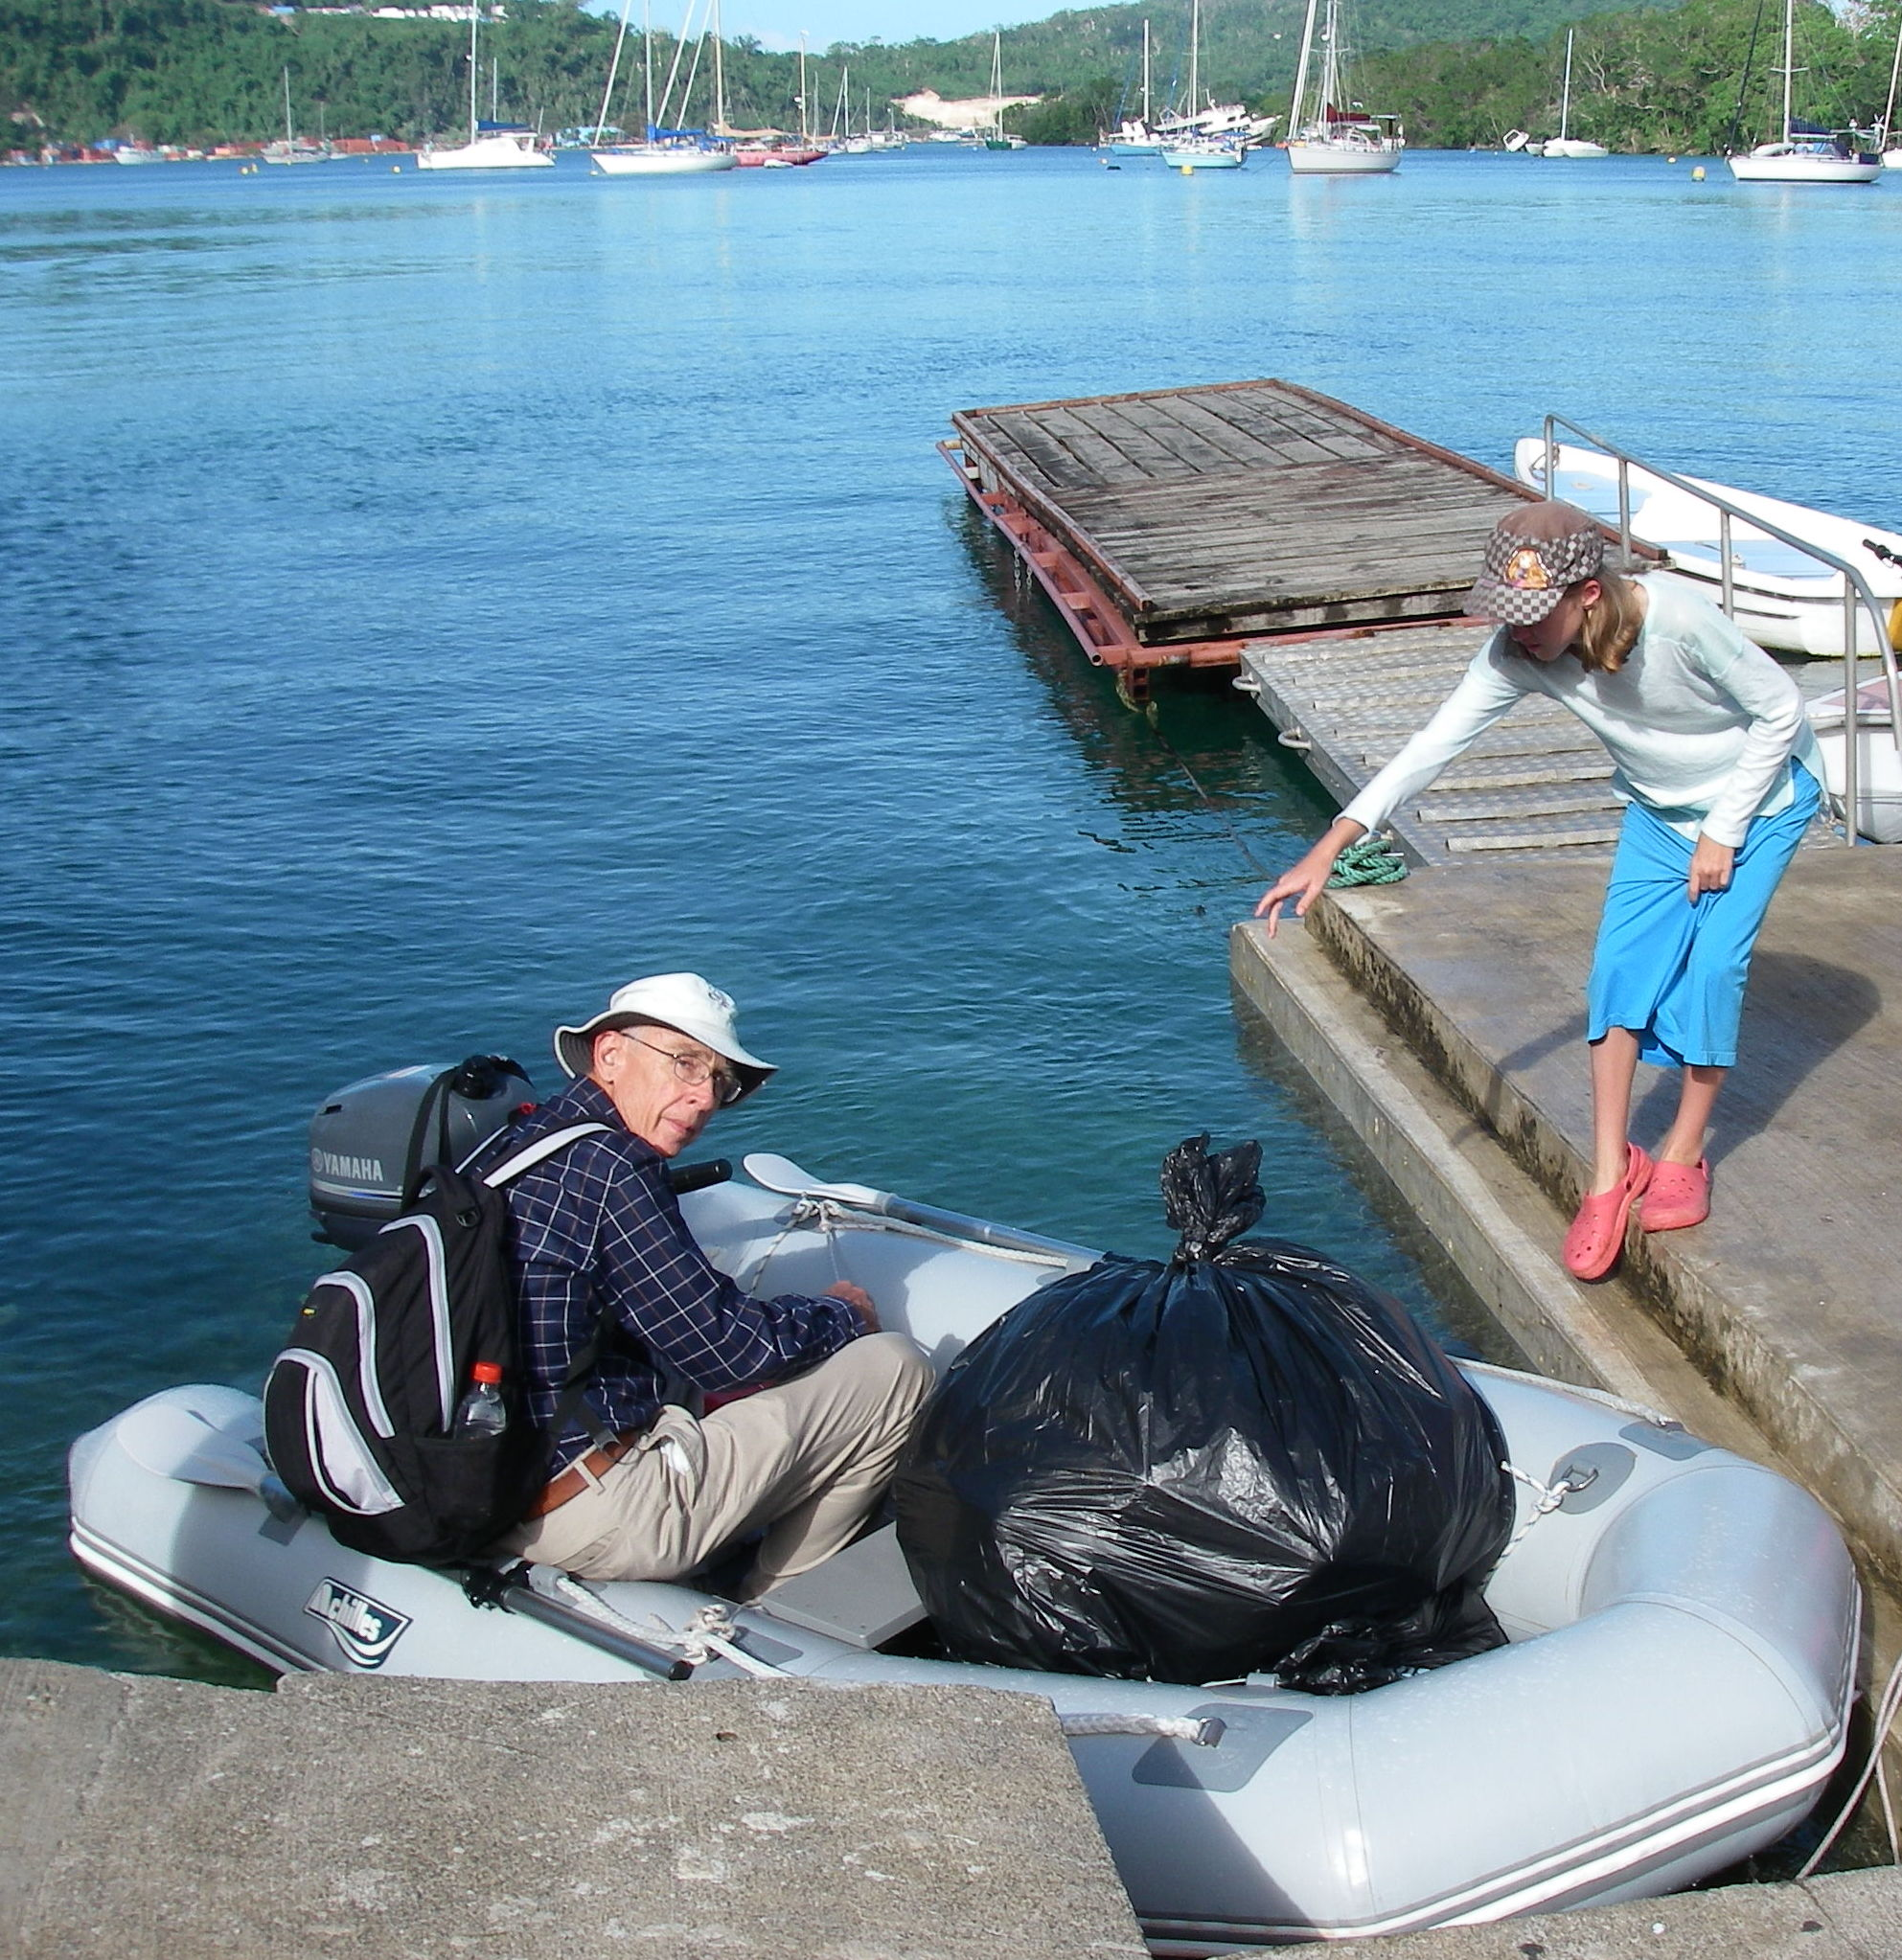 11-jeff-brought-many-bags-full-of-art-and-school-supply-kits-from-joyful-to-the-dinghy-dock-the-morning-of-the-art-lesson-young-faith-helped-take-the-painter-from-jeff